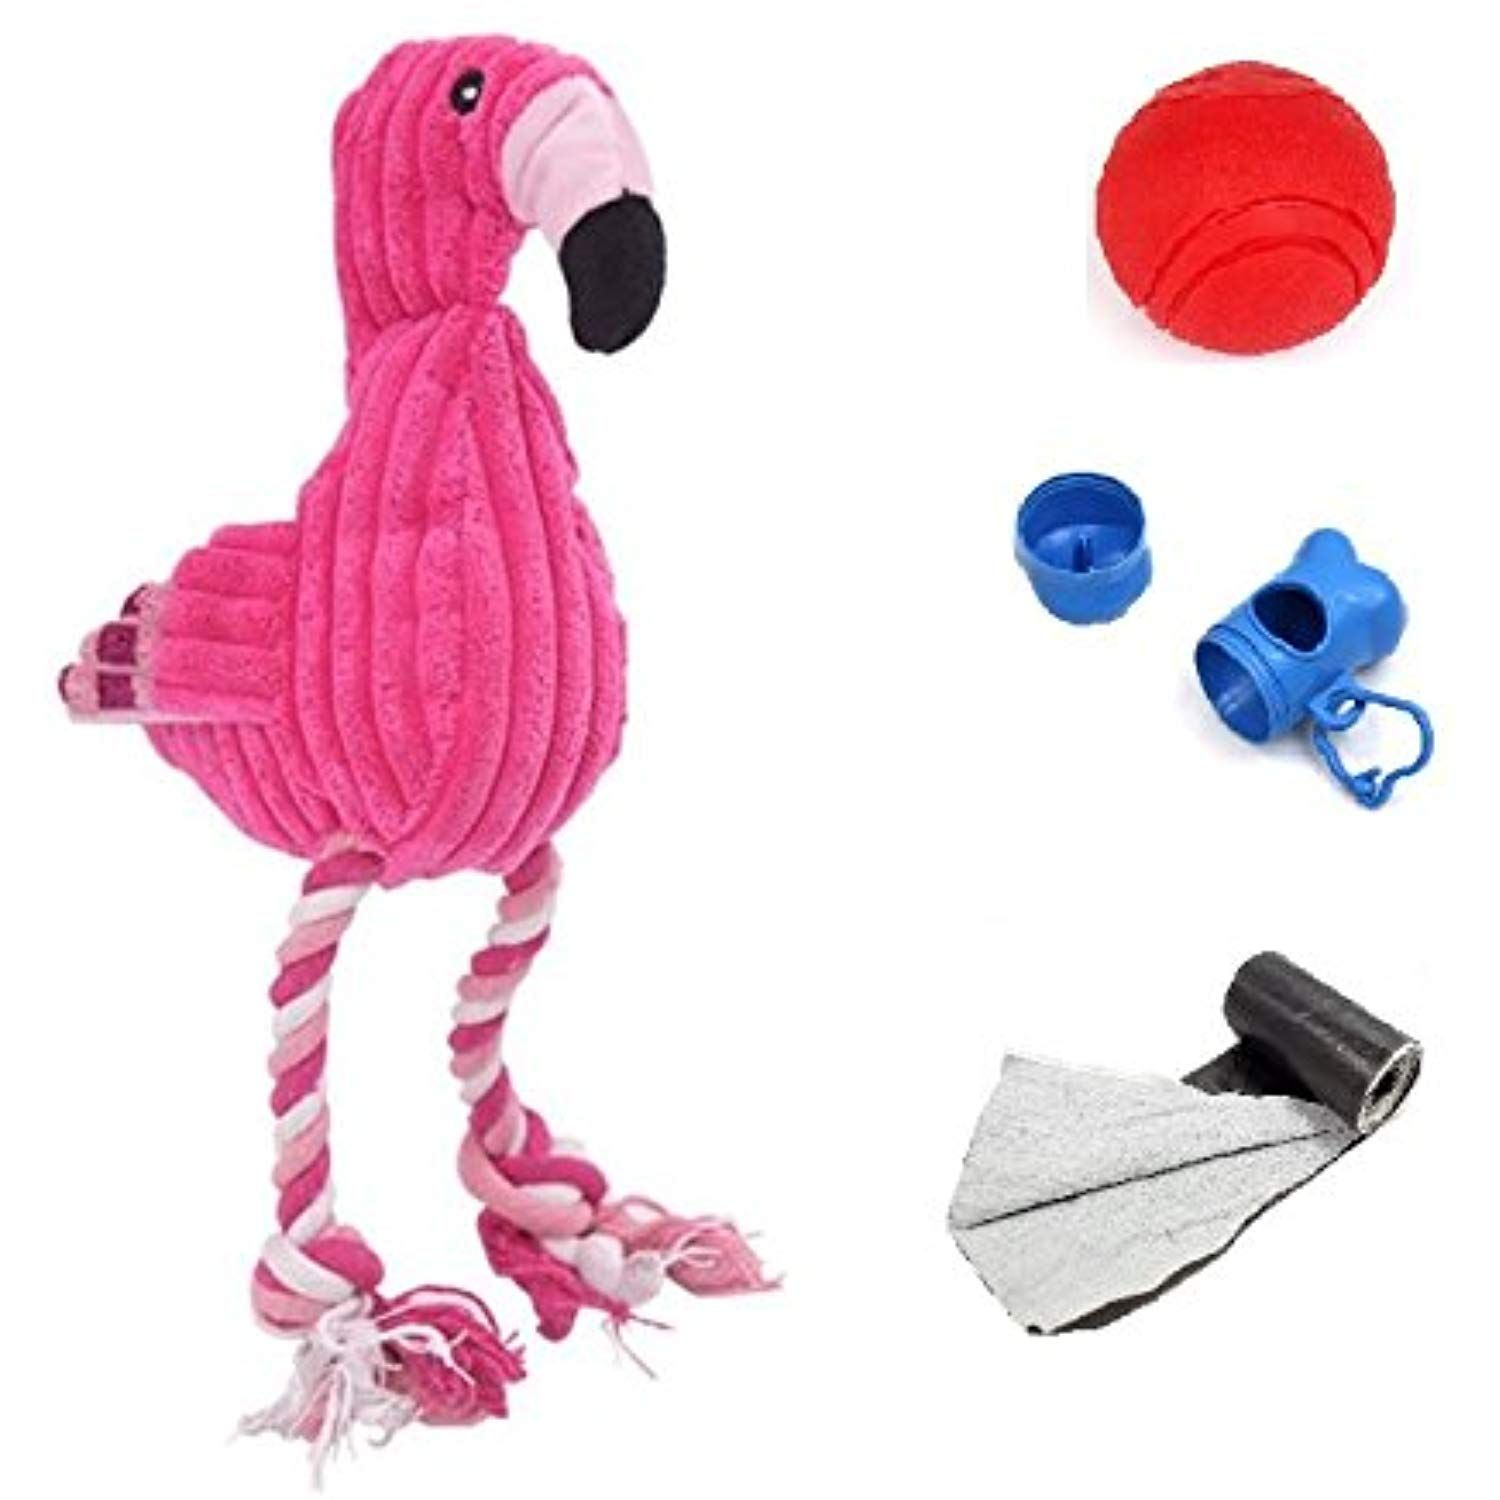 Afuby Dog Squeaky Toys Rope Toys Pet Knots Plush Toys 16 5 Pink